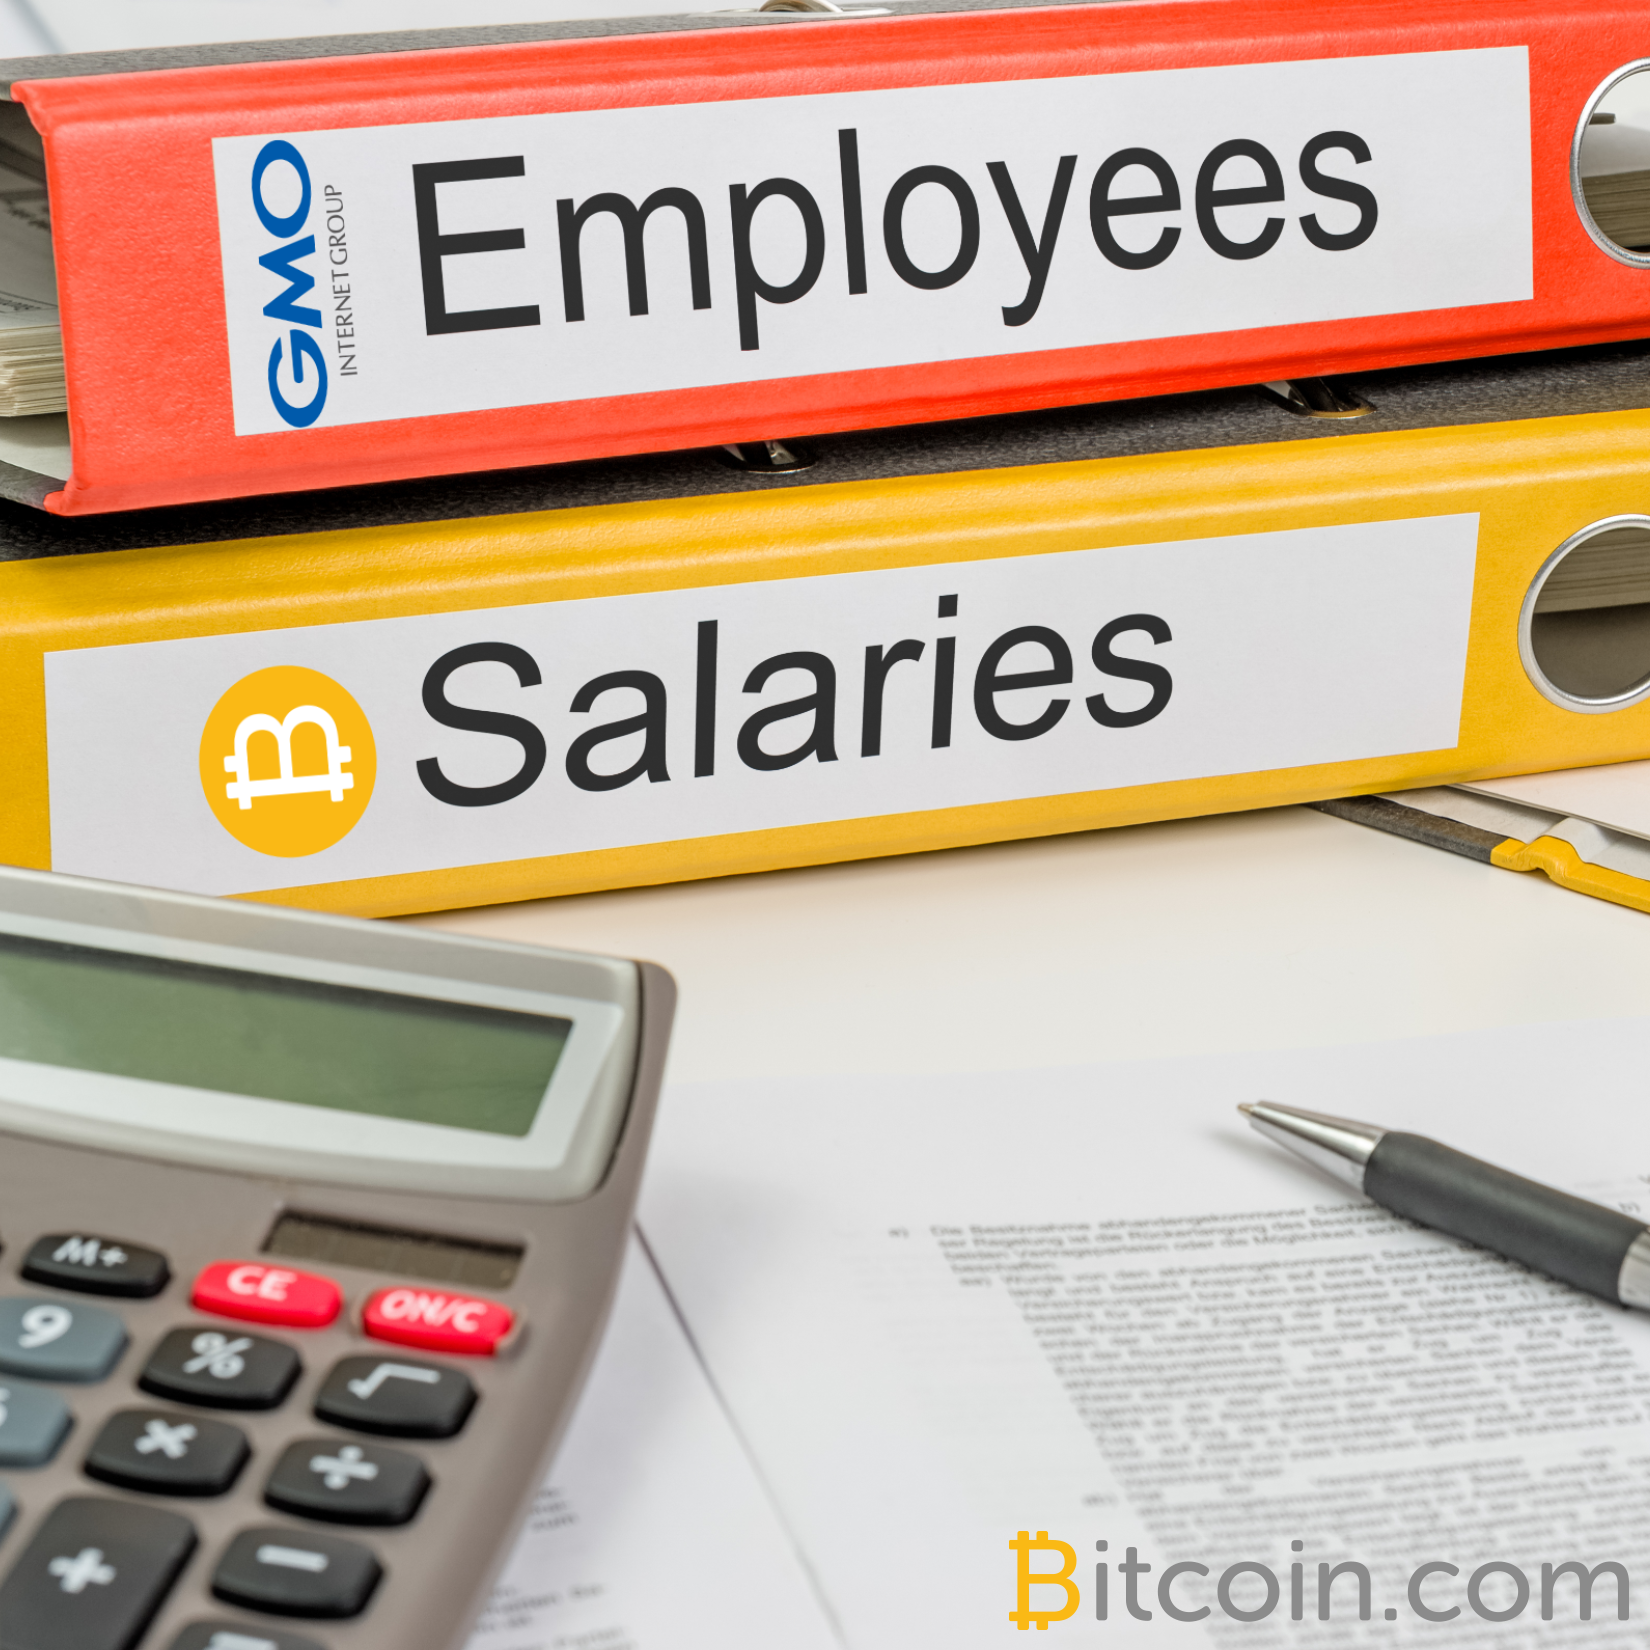 Japanese Internet Giant GMO Offers to Pay 4700+ Employees in Bitcoin